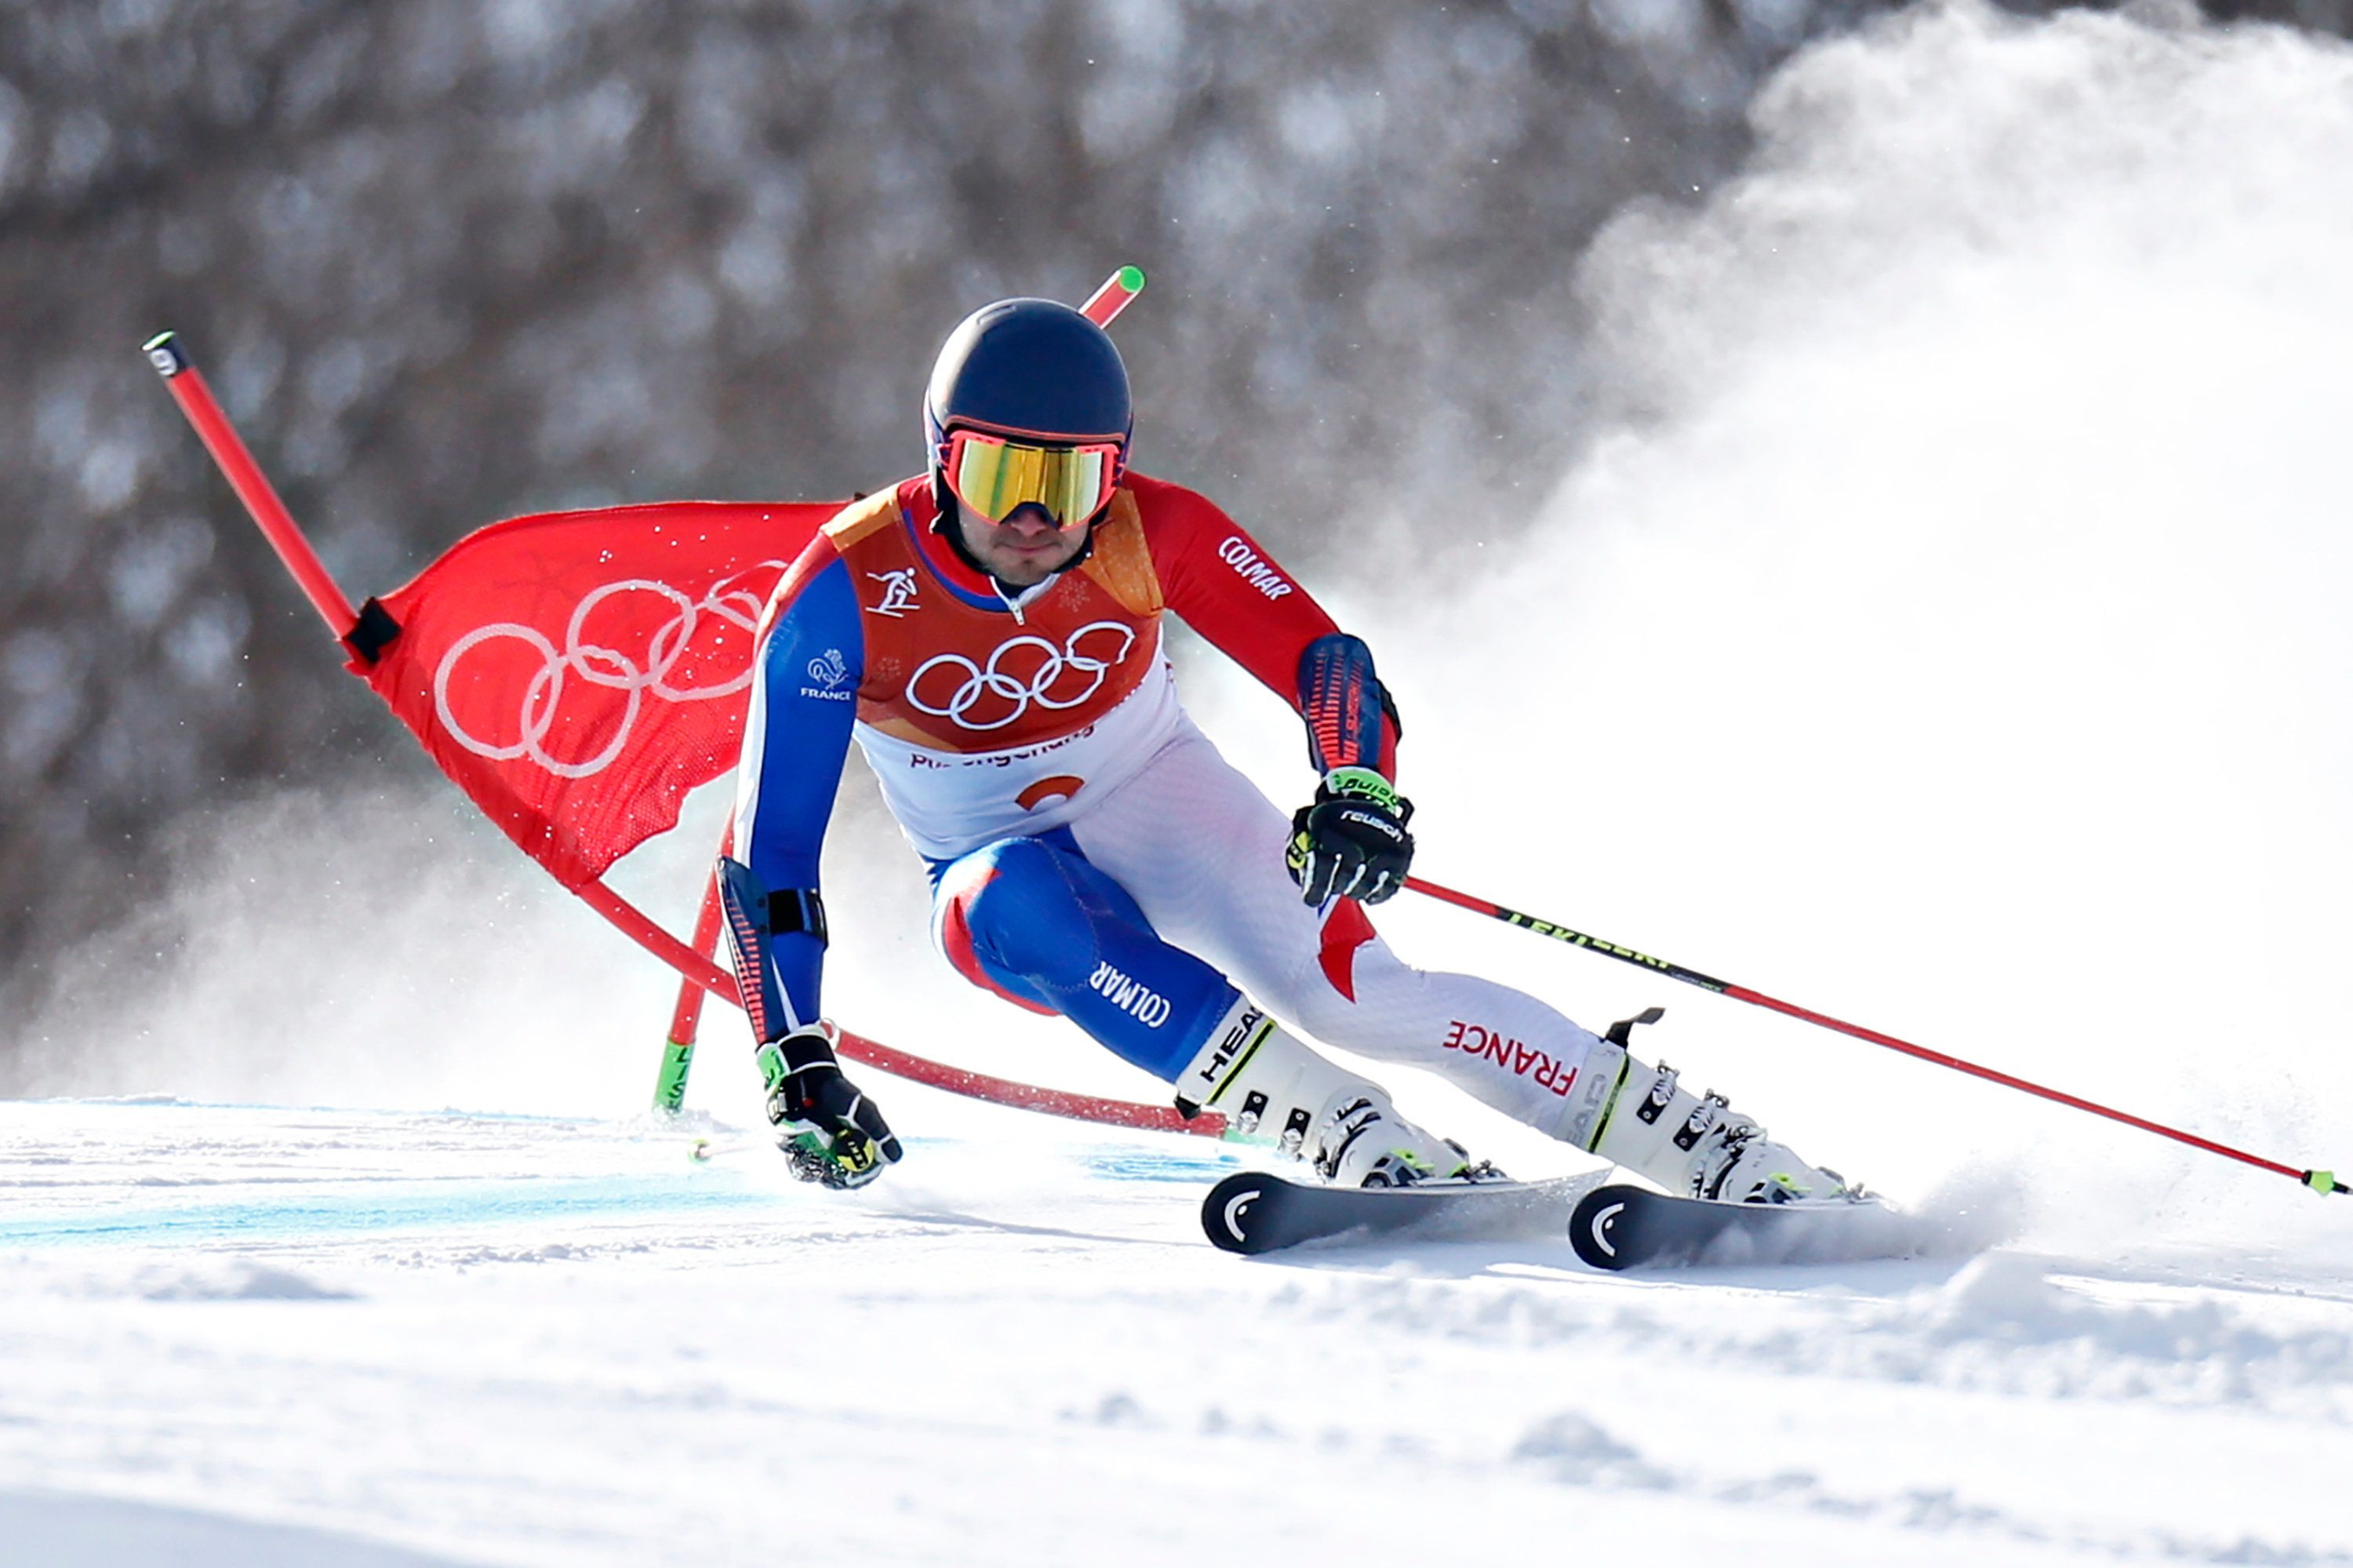 French Skier Booted From Olympics After Angry Remarks About Teammates